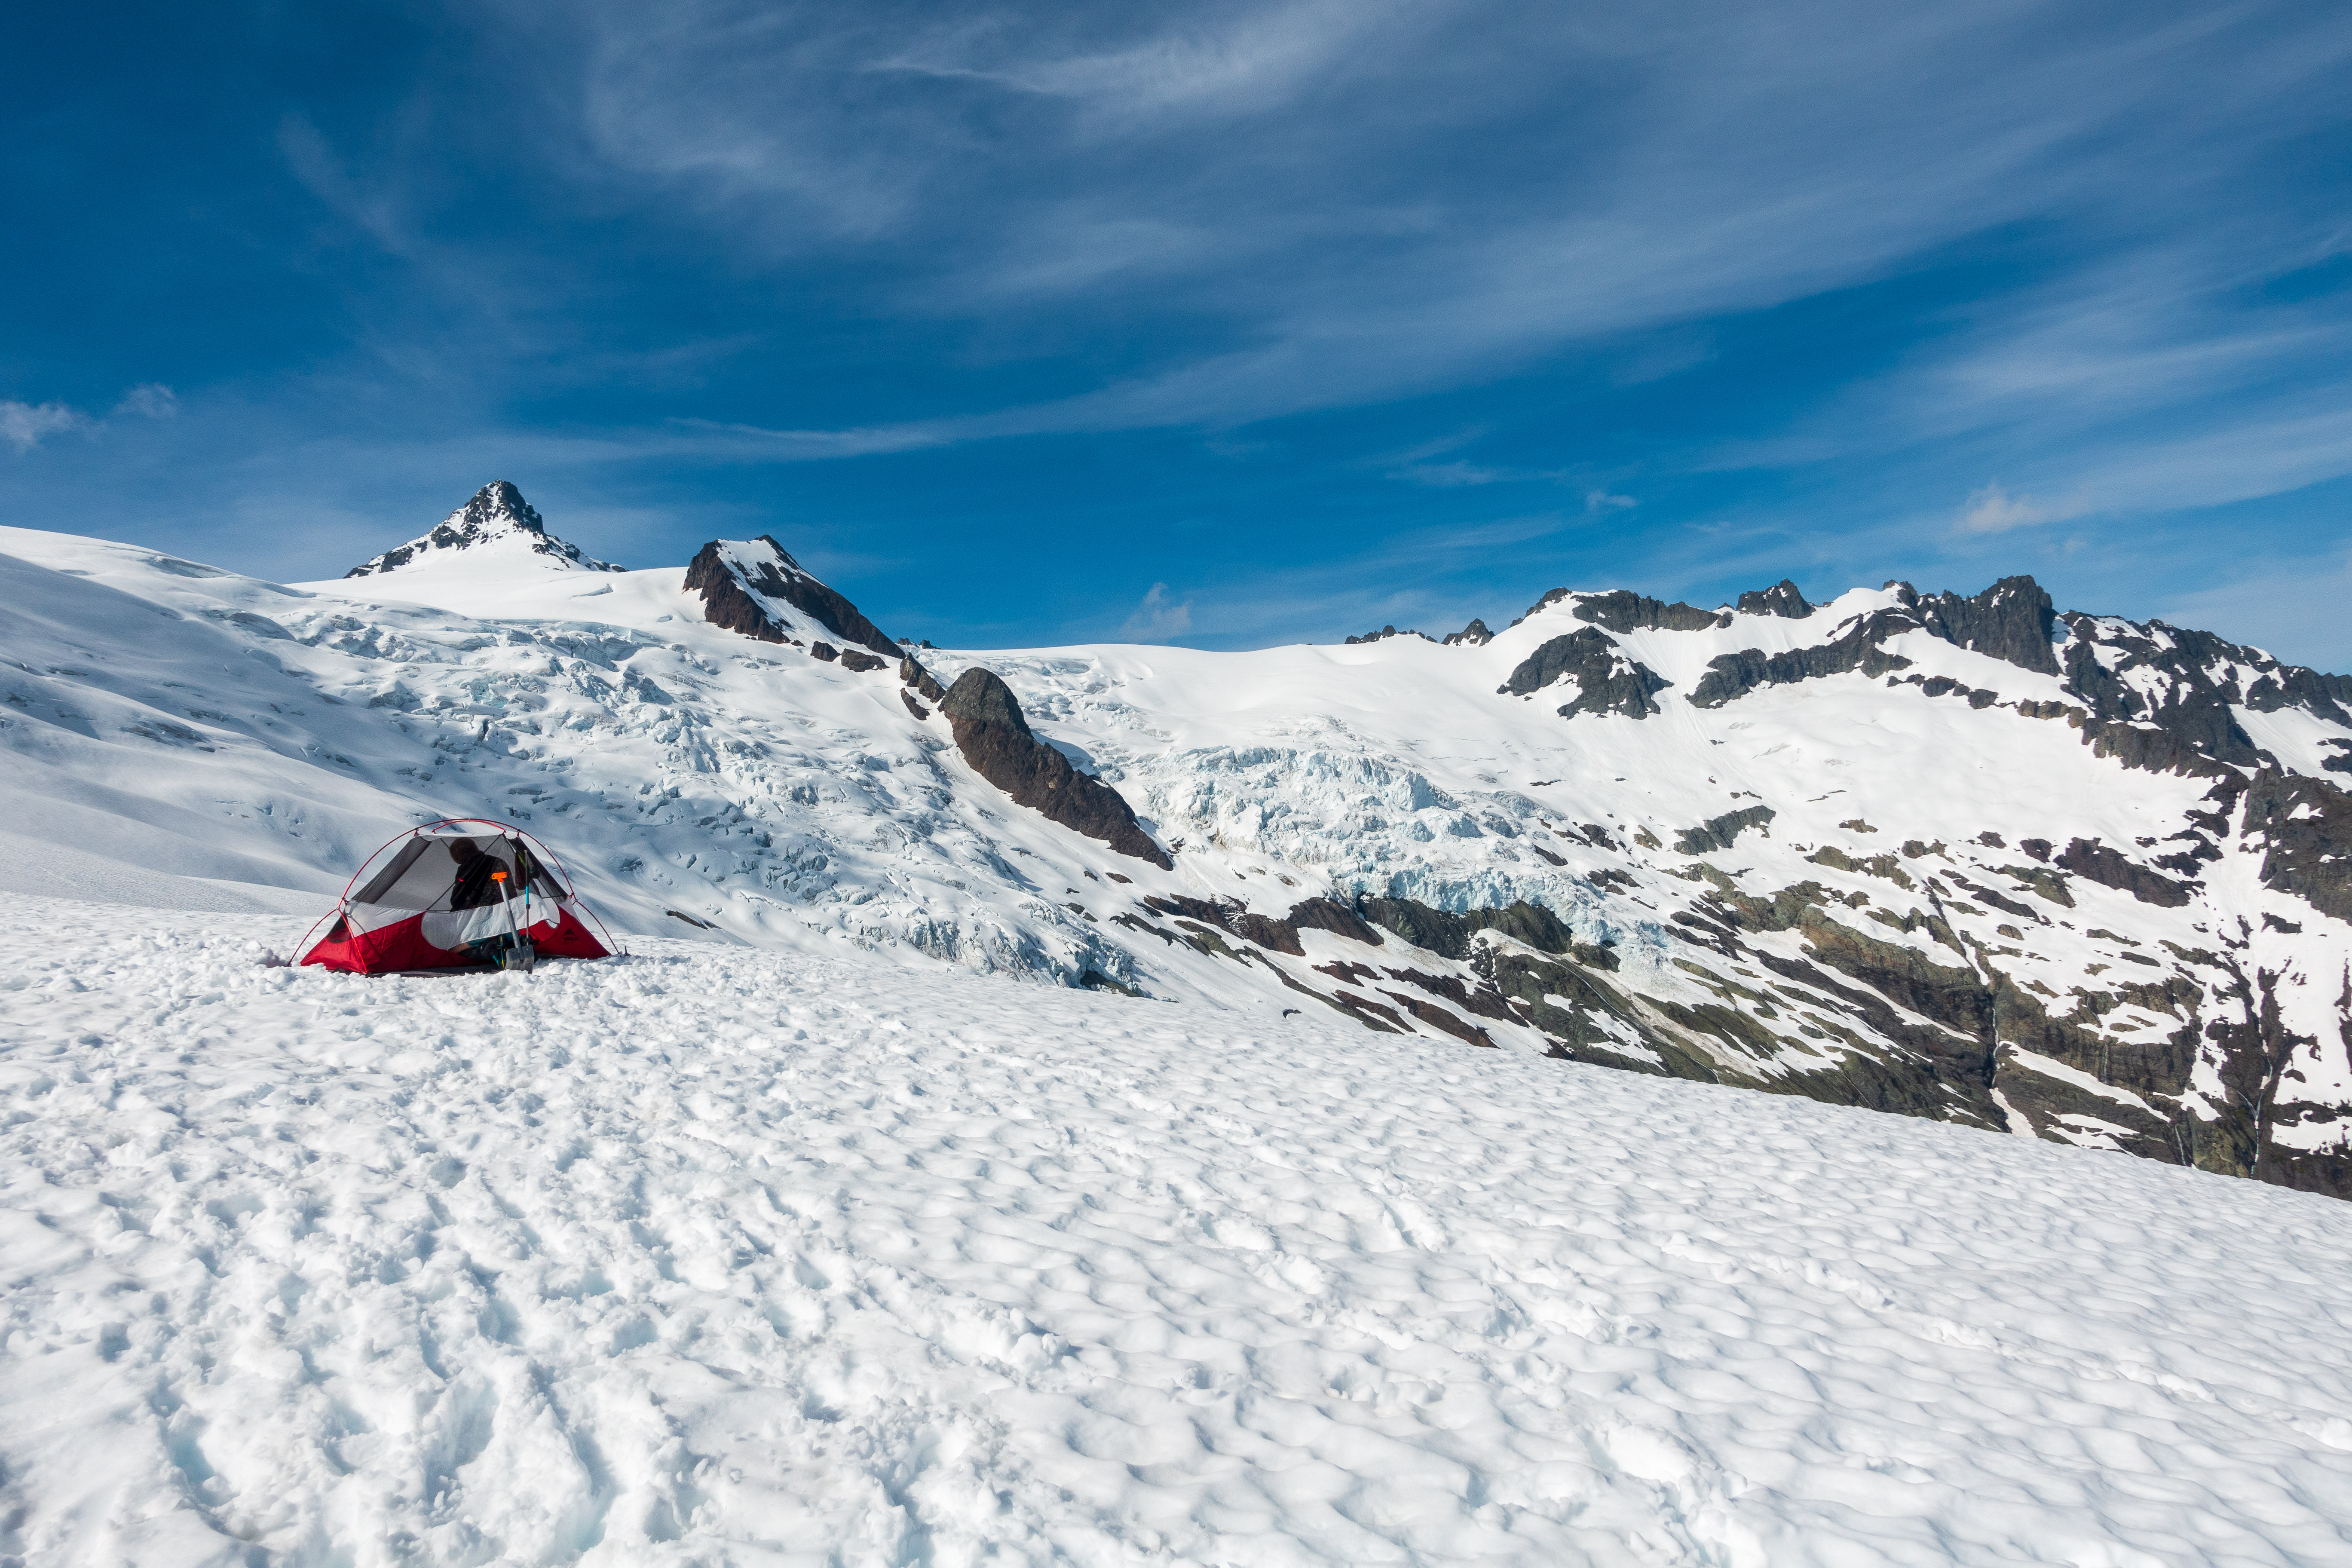 Our camp location. Views of the sulphide glacier.